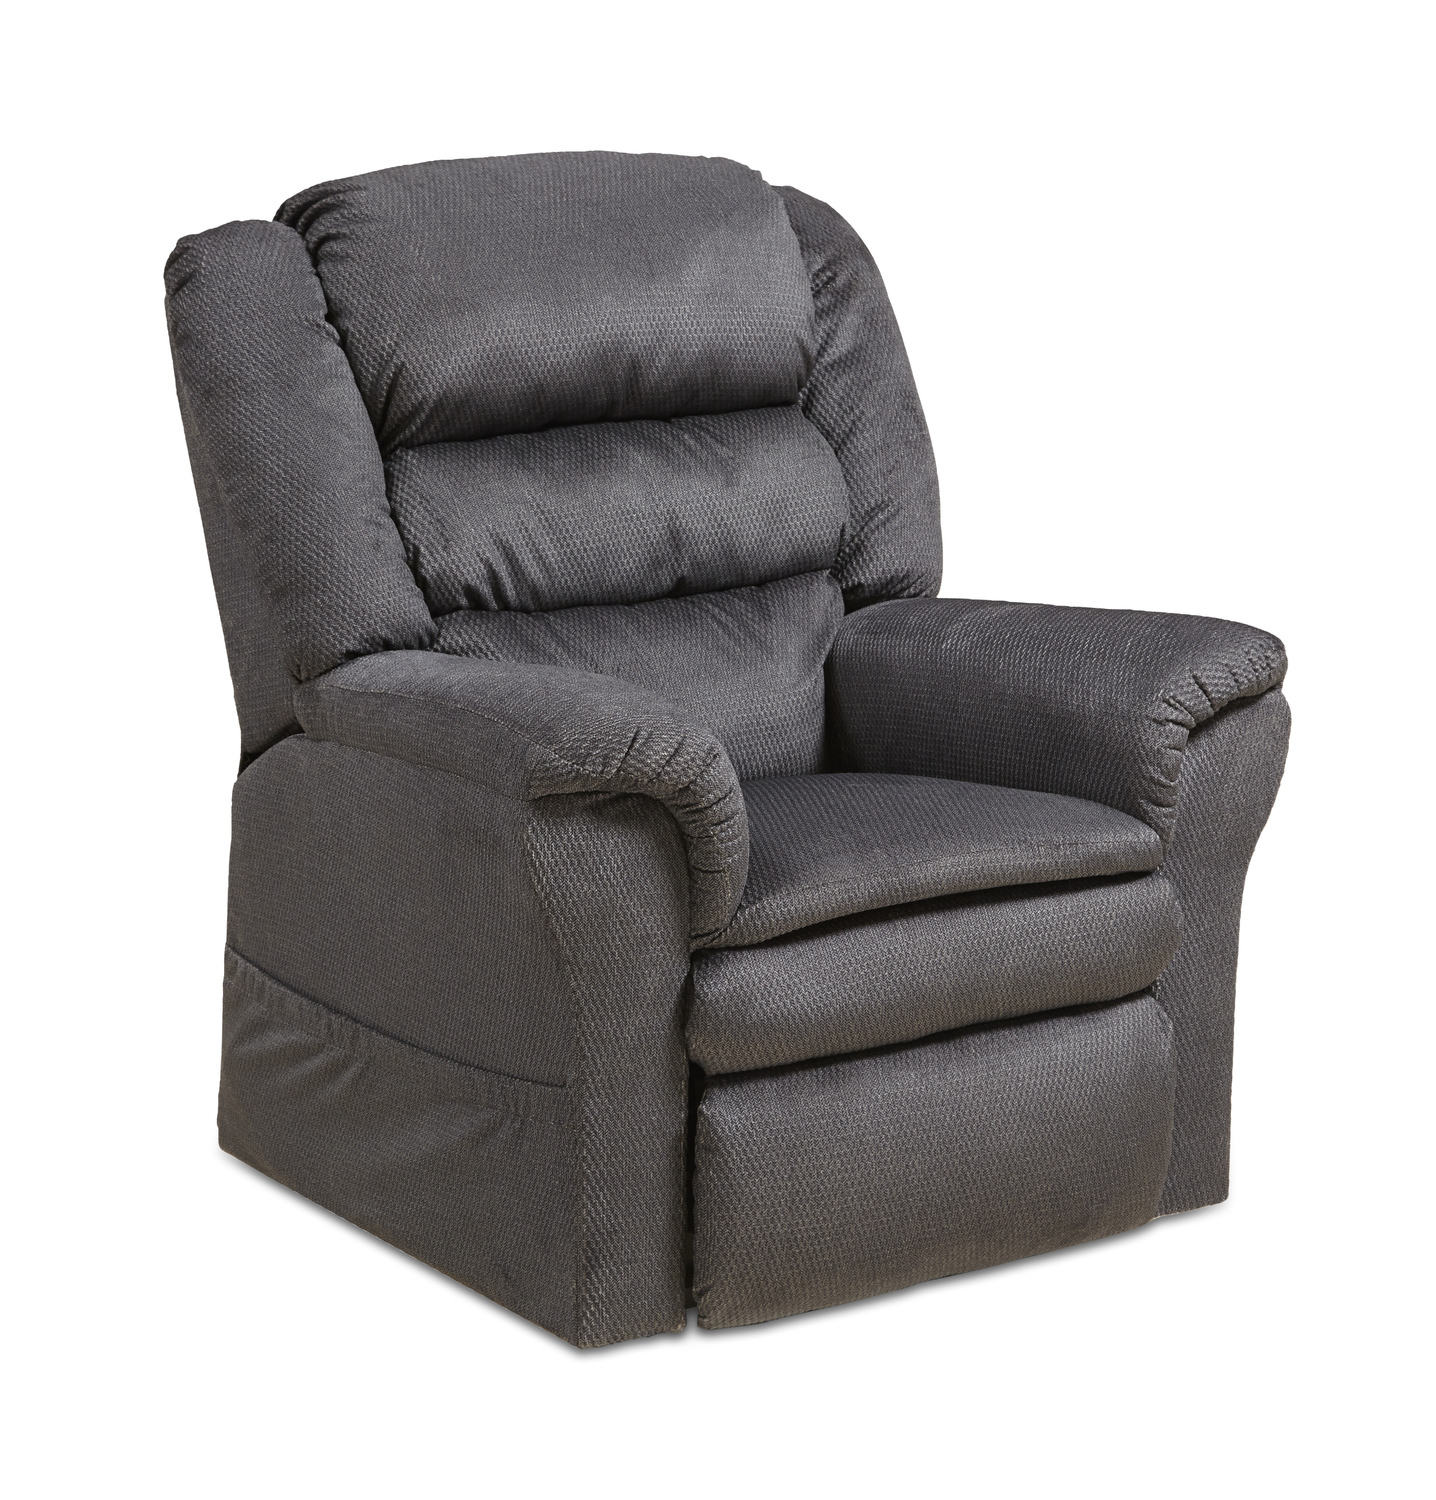 Kelly Power Lift Chair Recliner